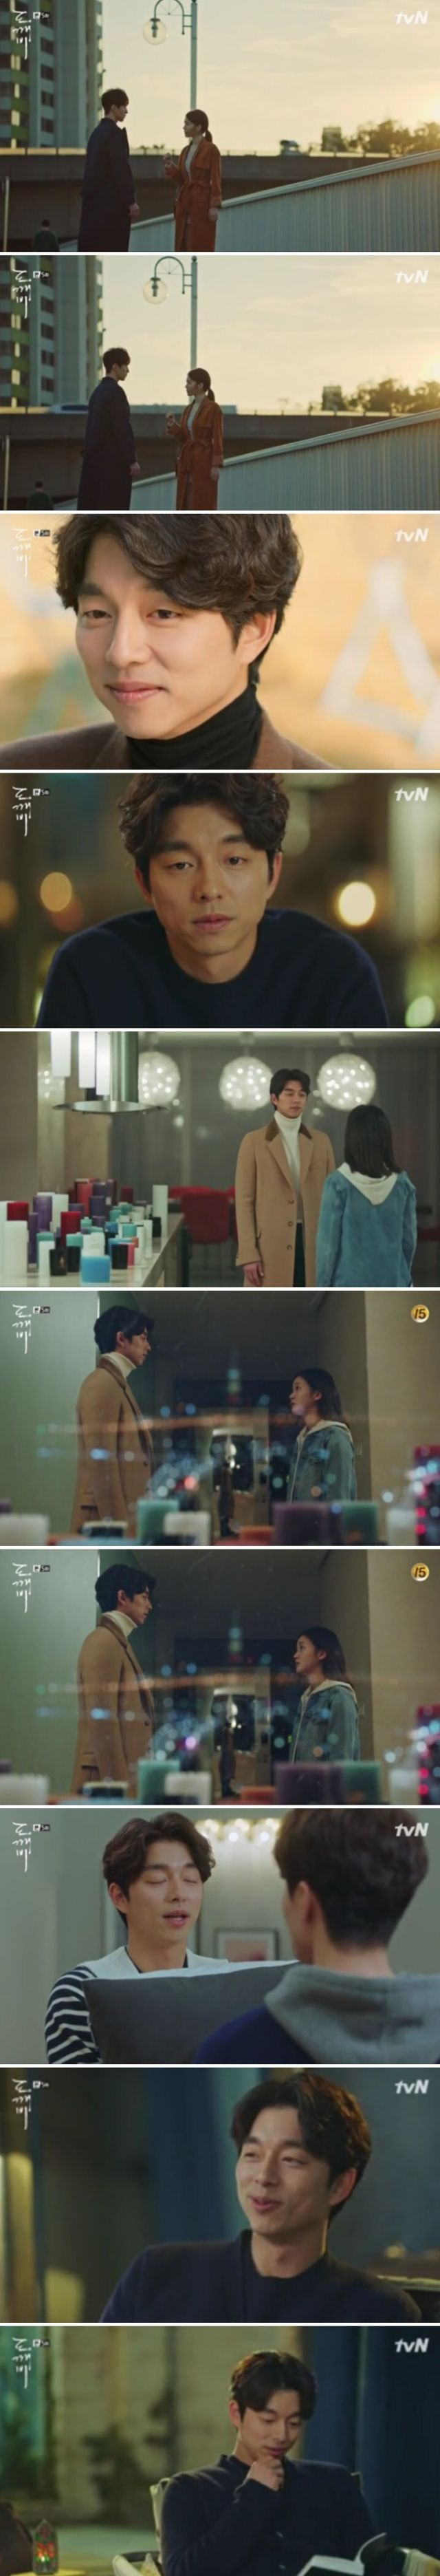 [Spoiler] Added episodes 5 and 6 captures for the #kdrama 'Goblin'